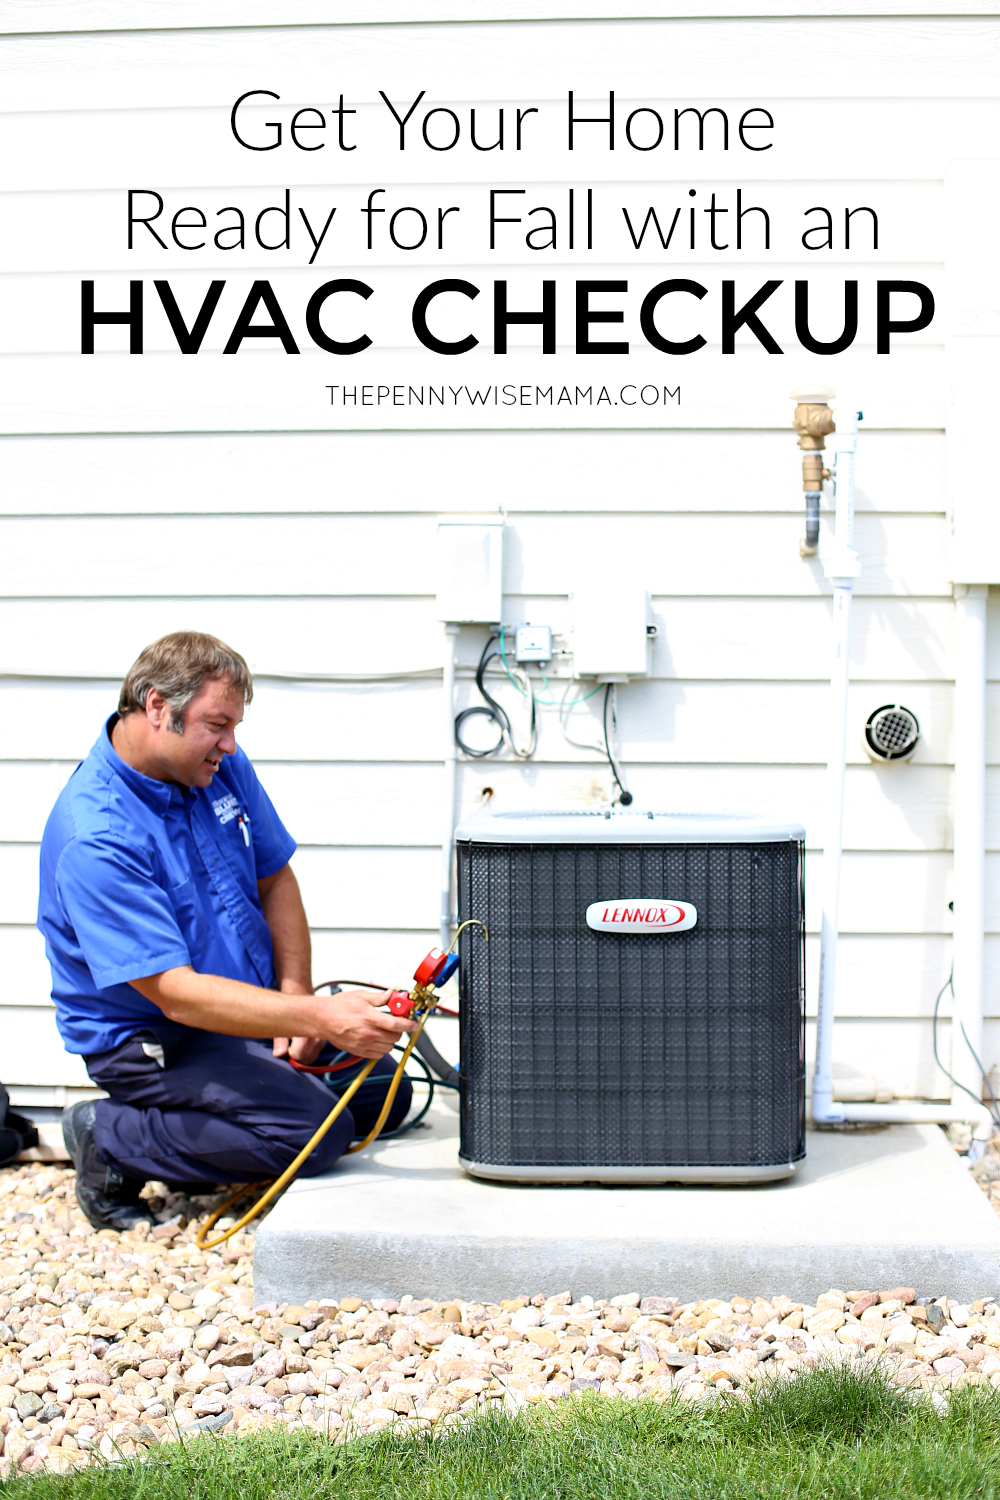 Get your home ready for fall (or any season!) with an HVAC checkup!